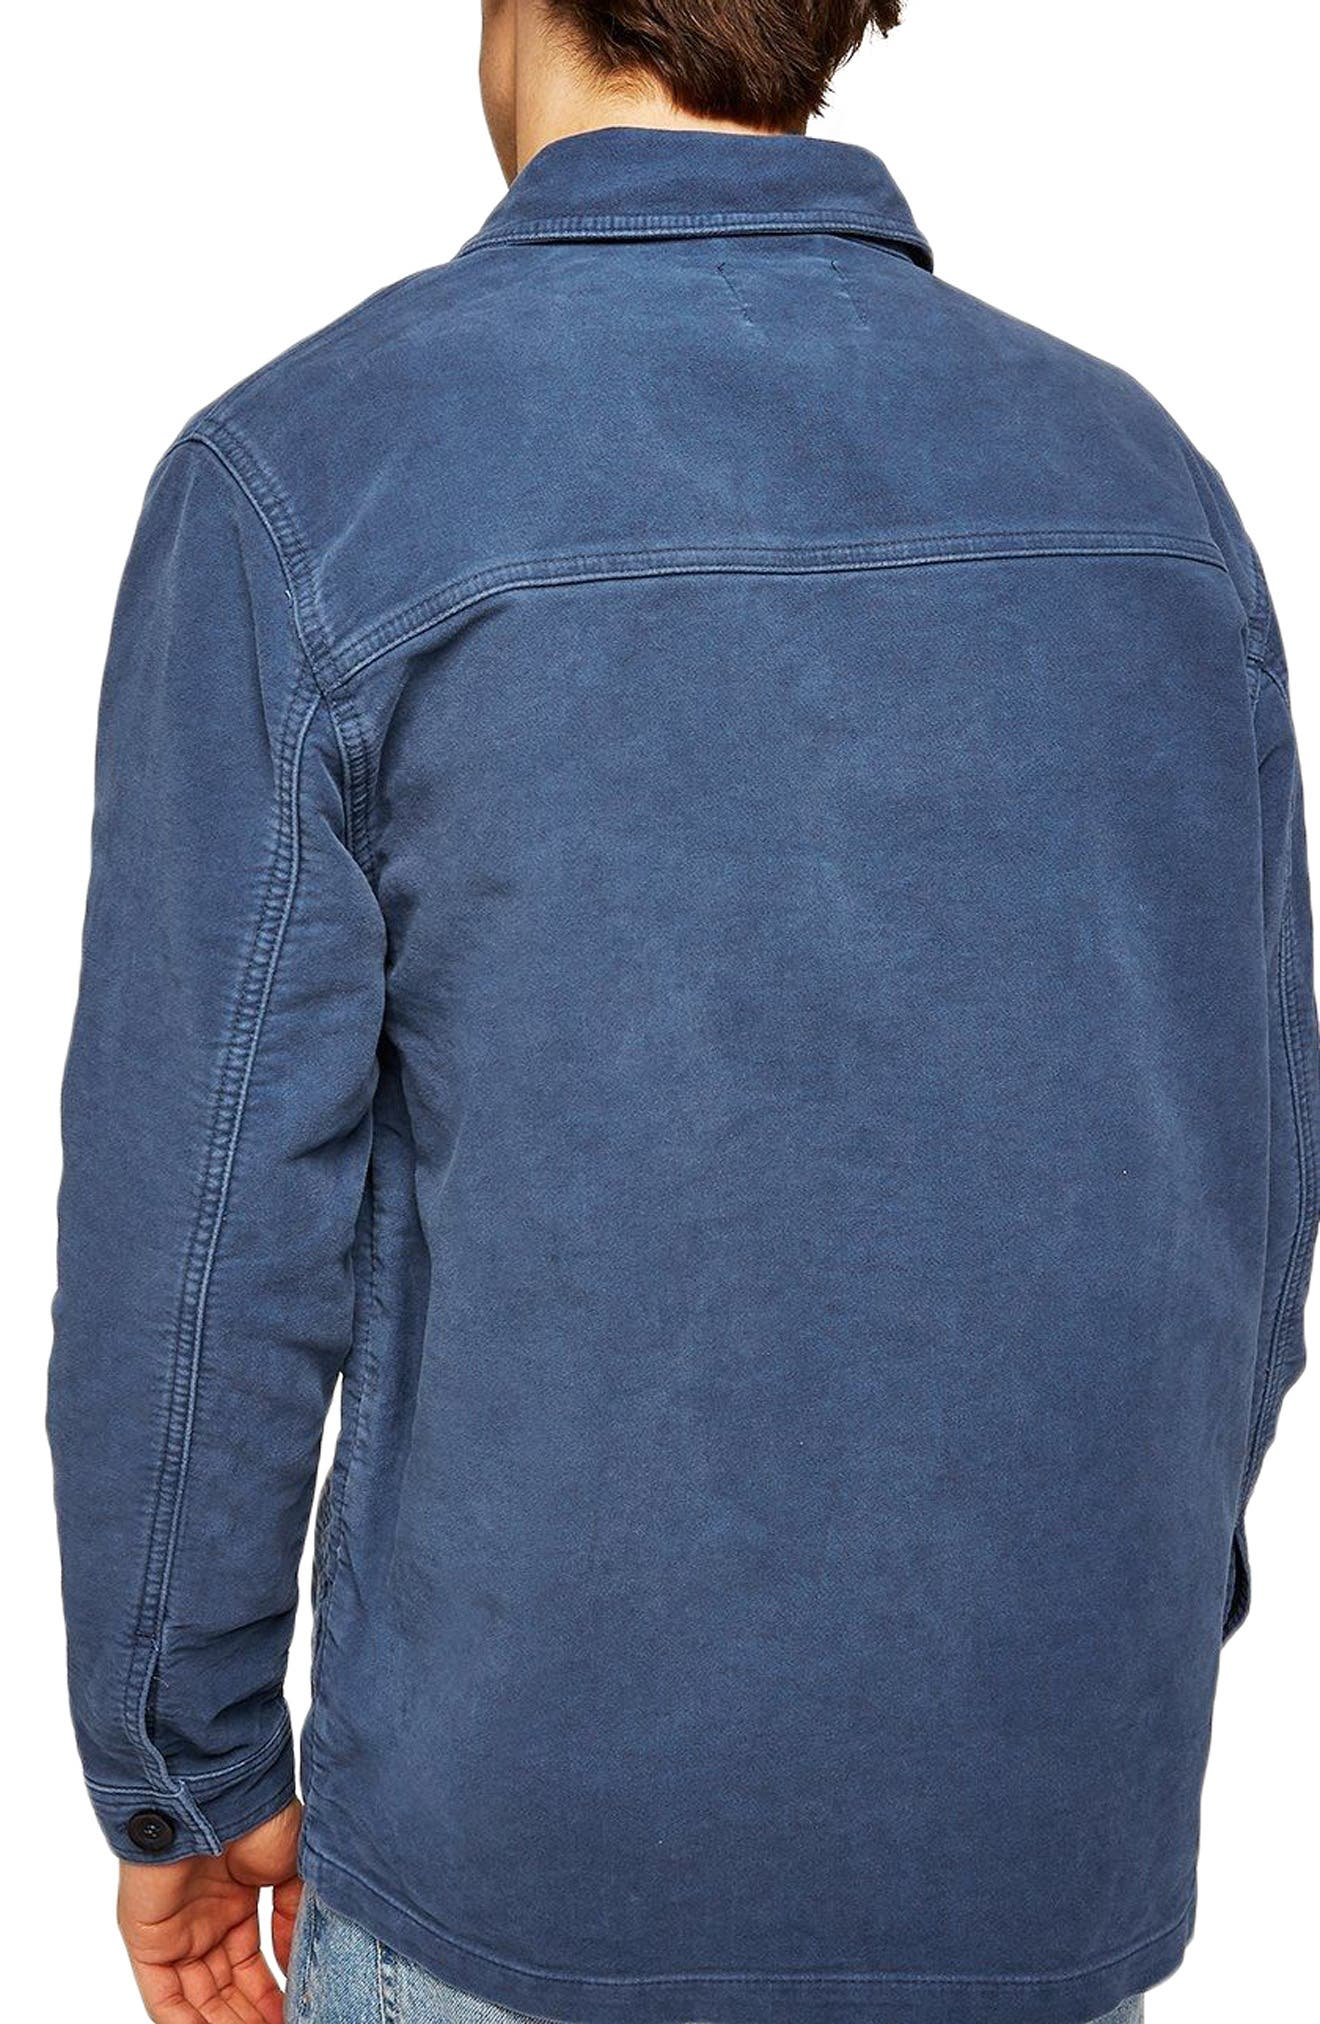 Classic Fit Work Jacket,                             Alternate thumbnail 2, color,                             Blue